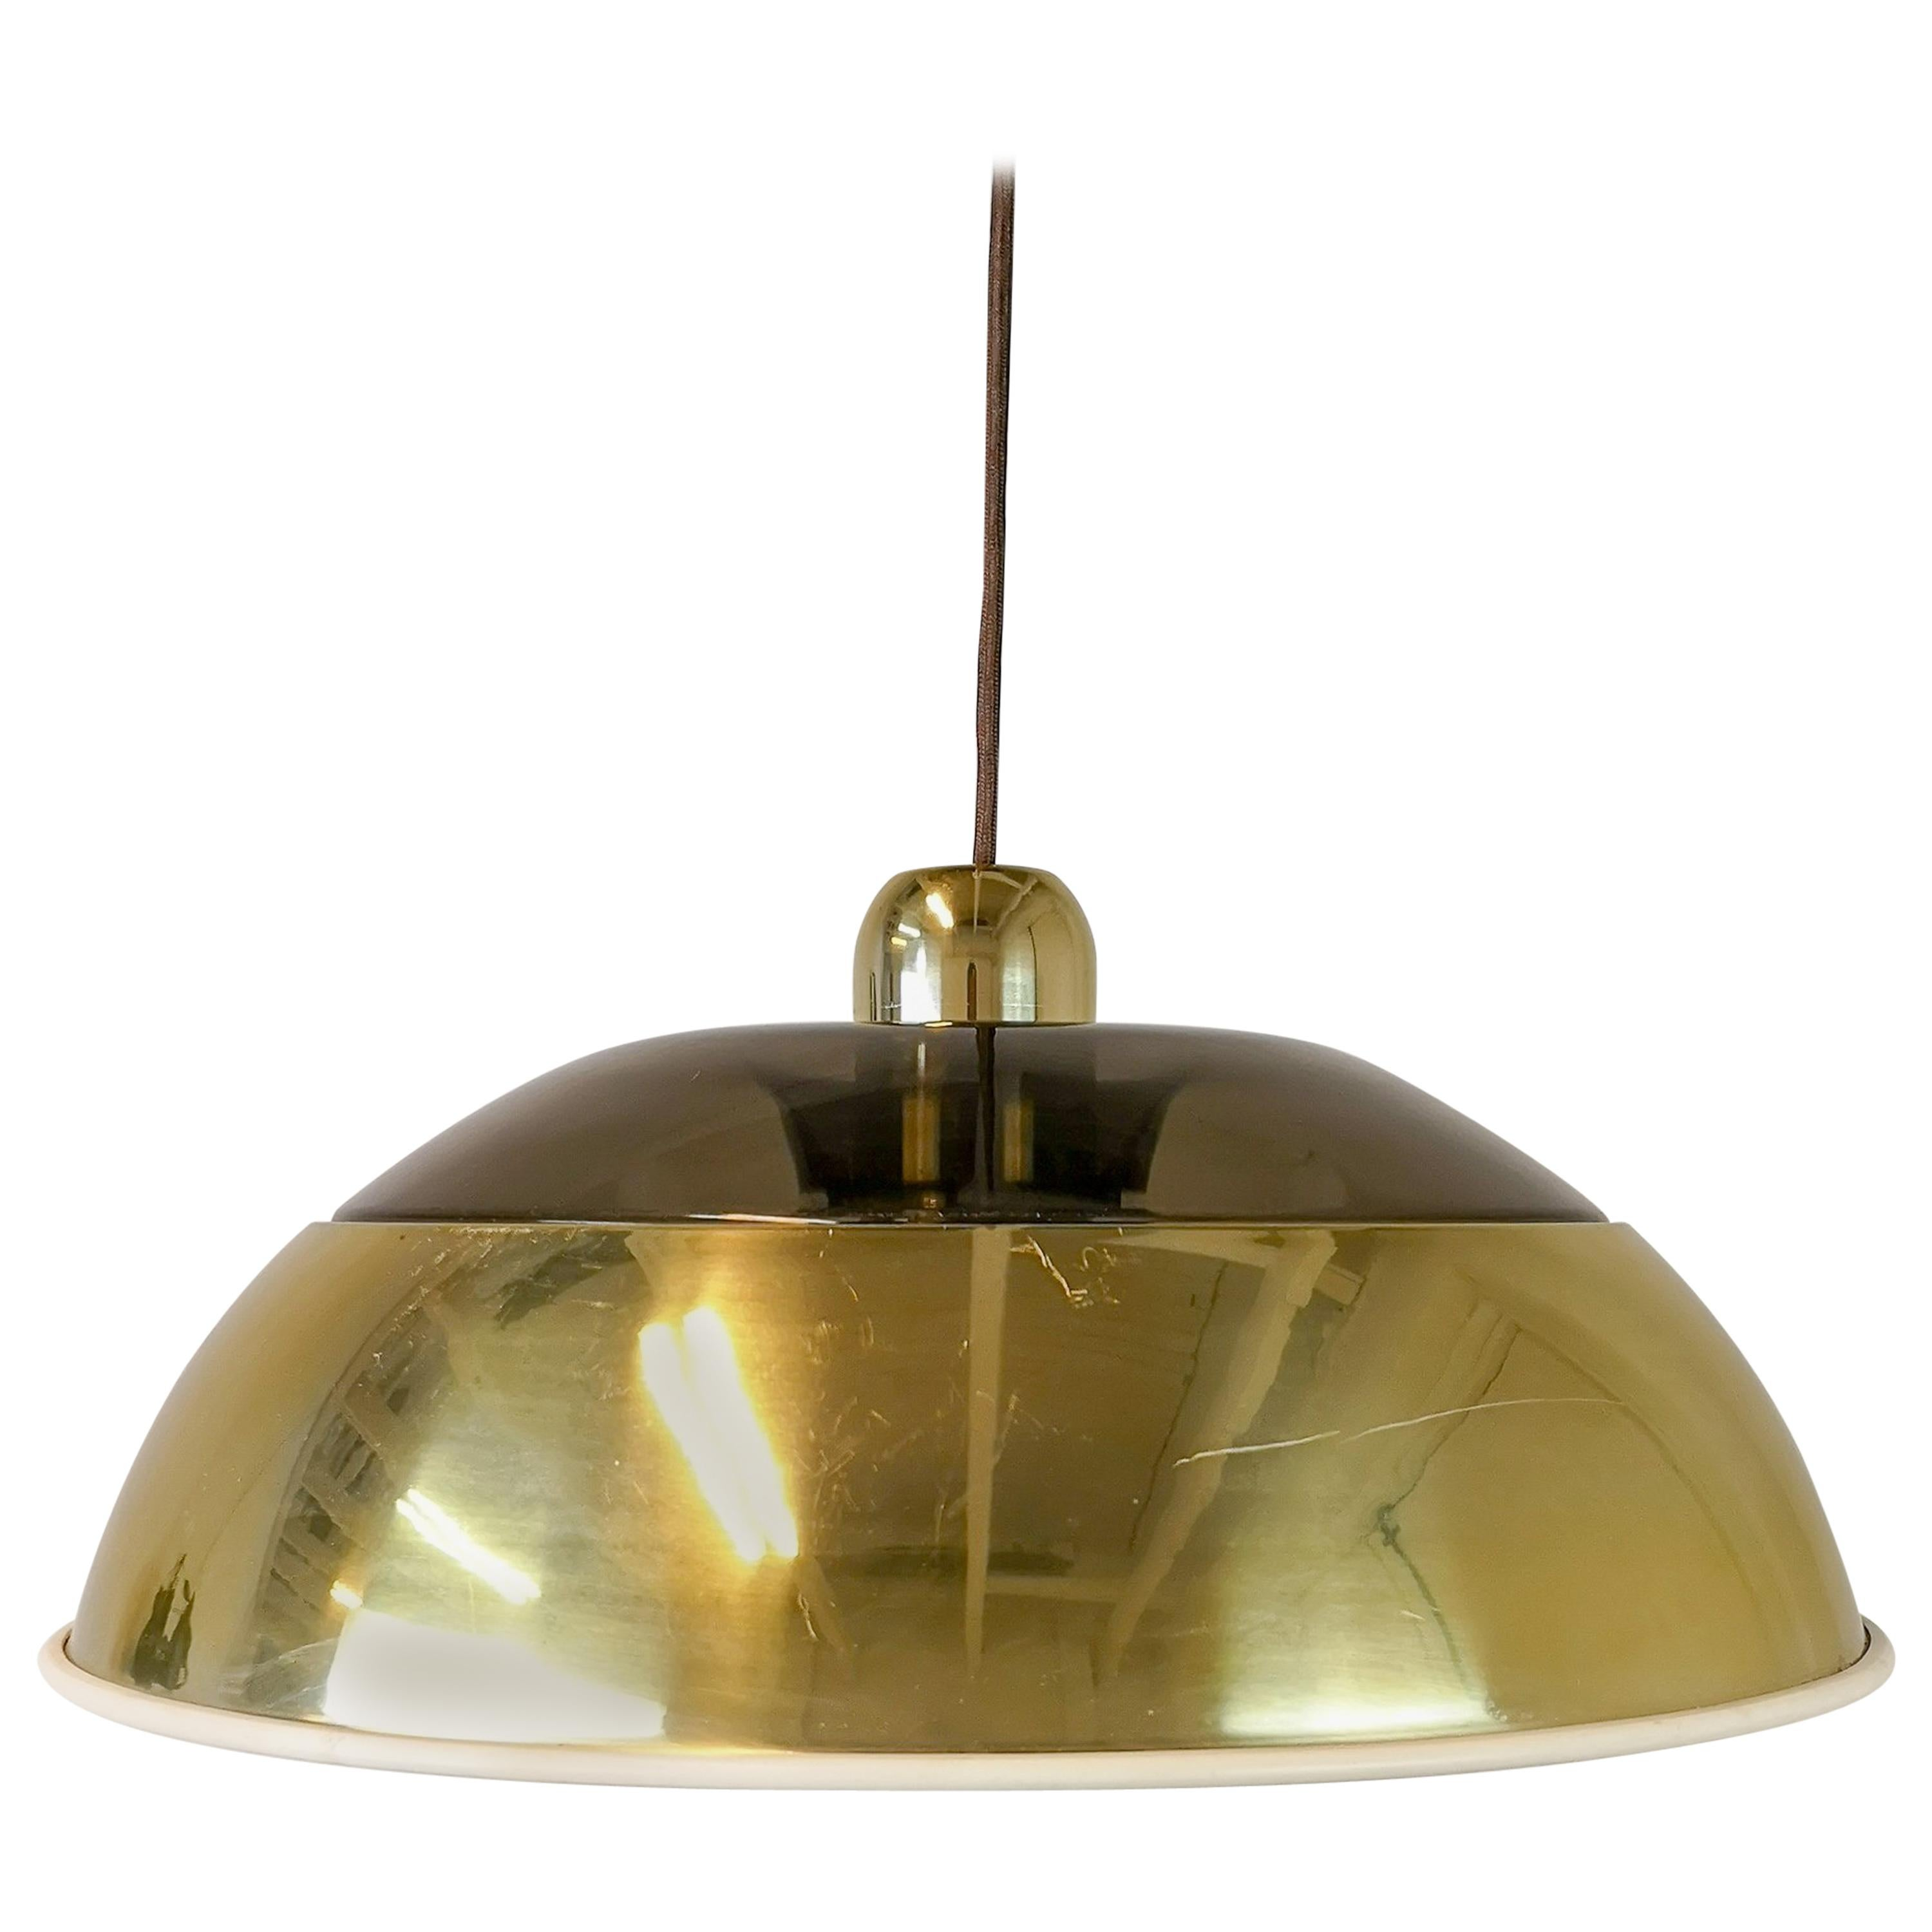 Ceiling Lamp Fagerlhults, Sweden, 1970s